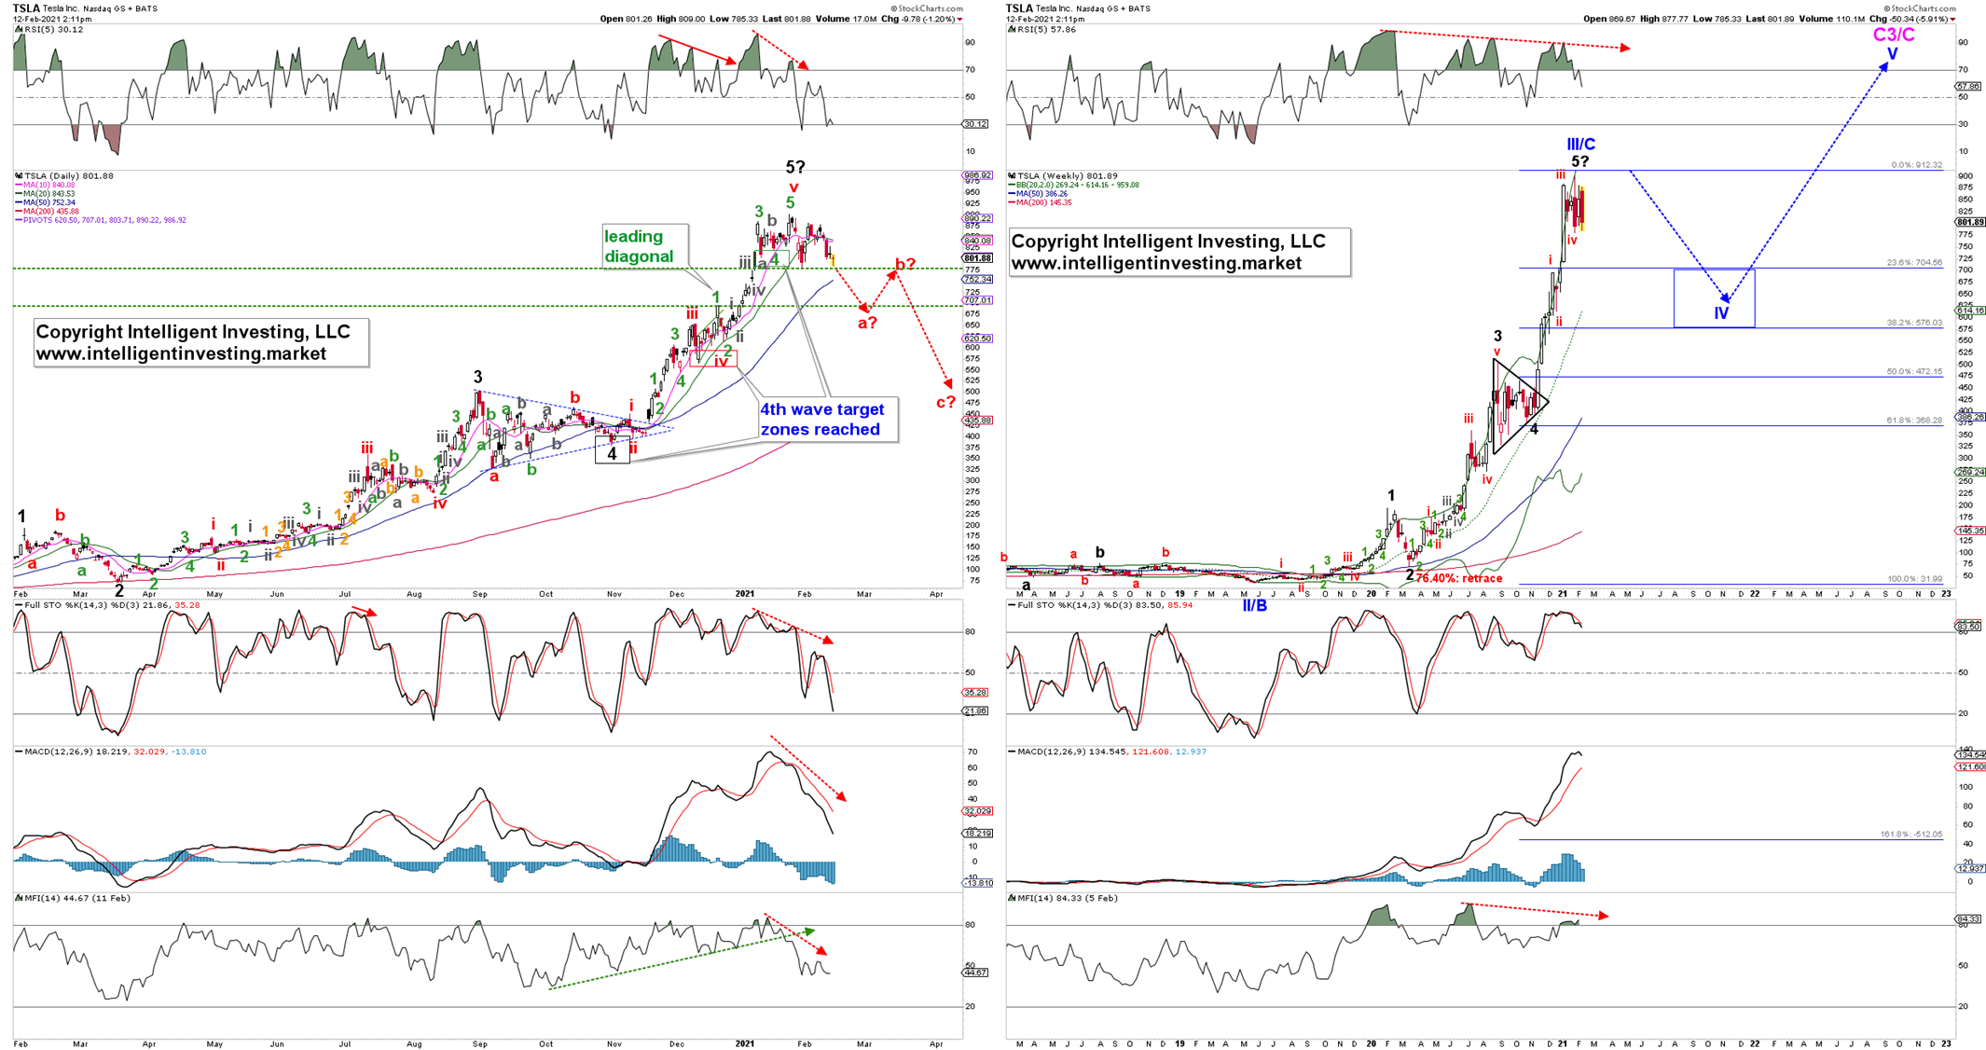 Tesla Daily And Weekly Candlestick Charts.